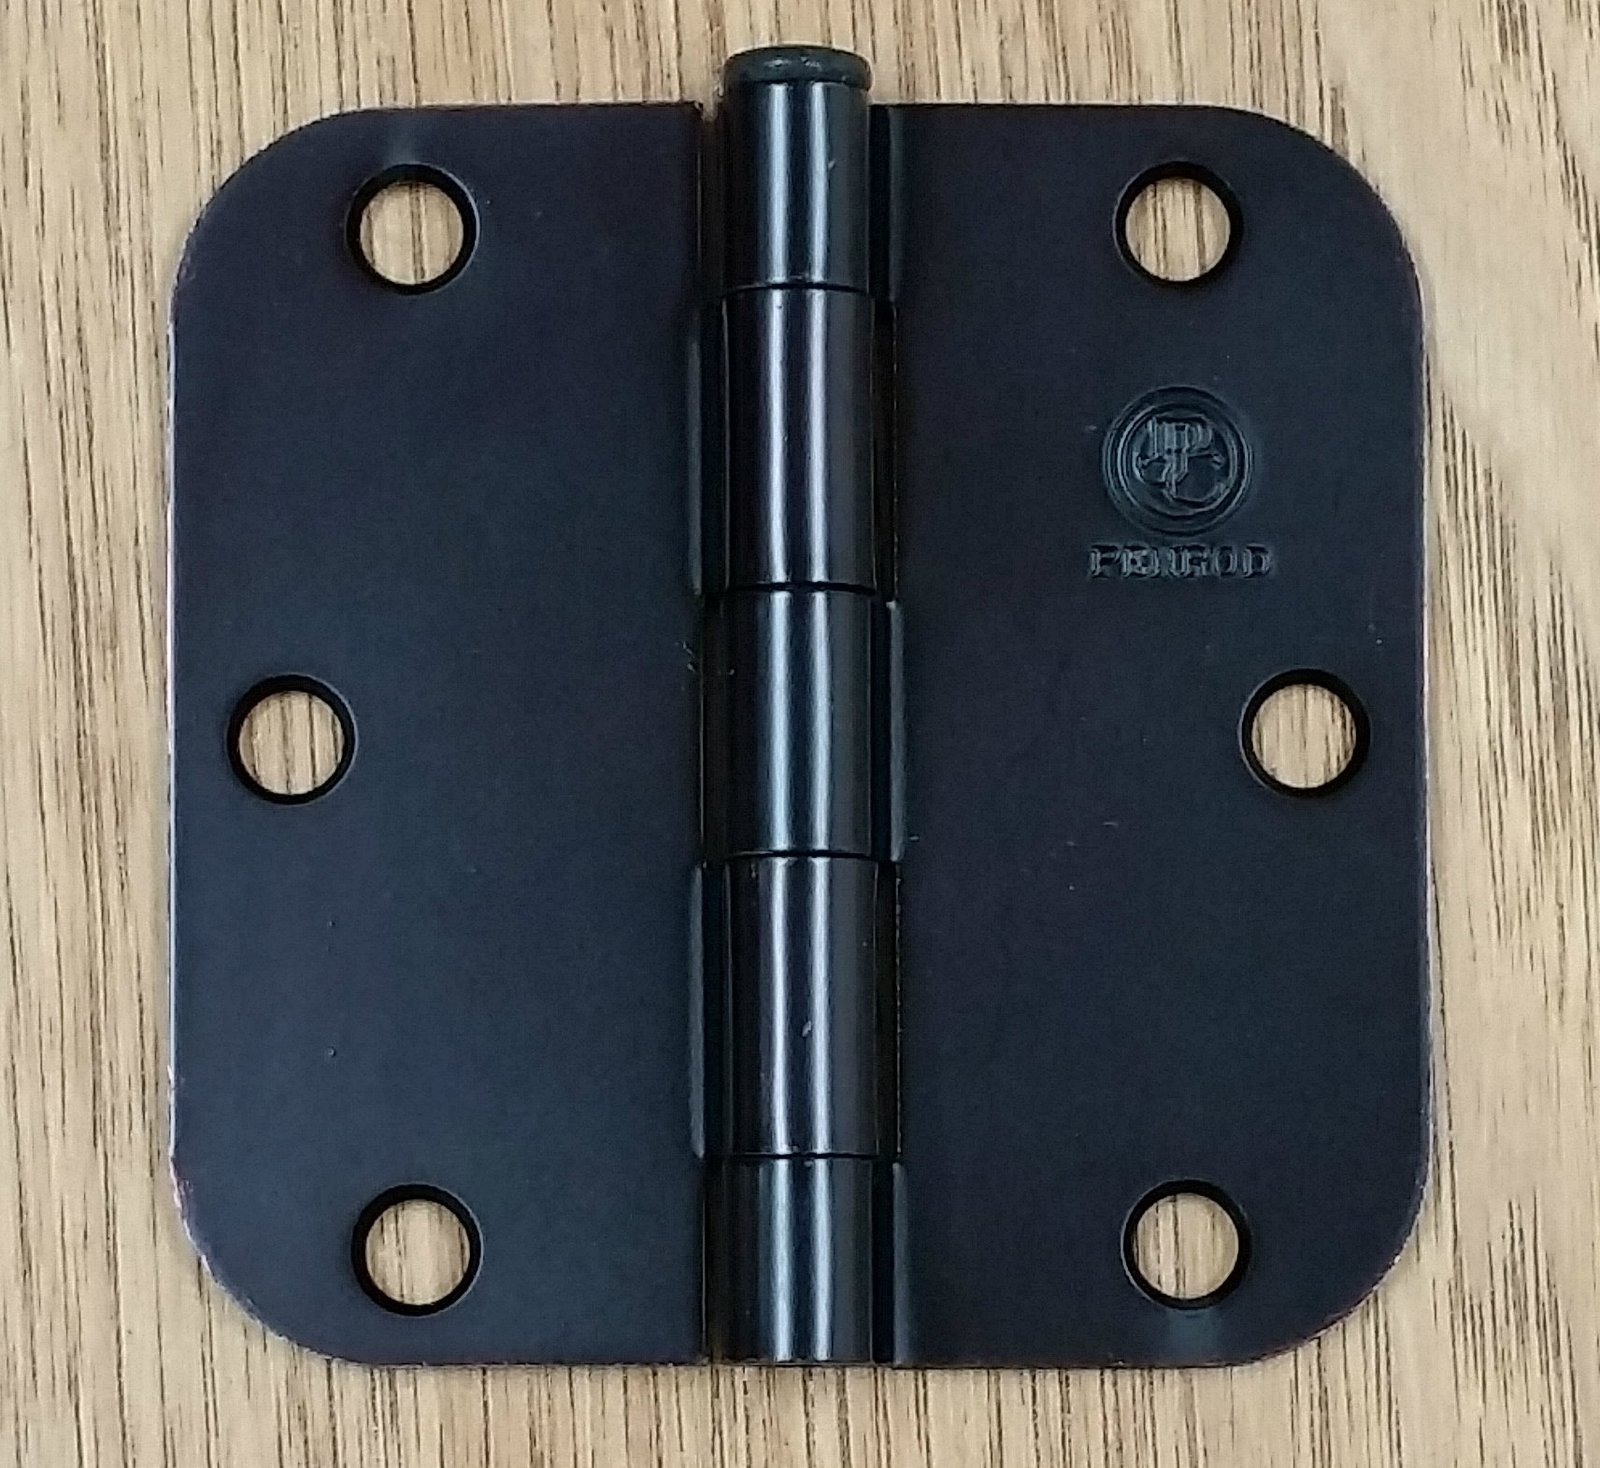 "Matte Black Residential Door Hinges - Penrod - 3.5"" with 5/8"" radius - 2 Pack - $10.84"